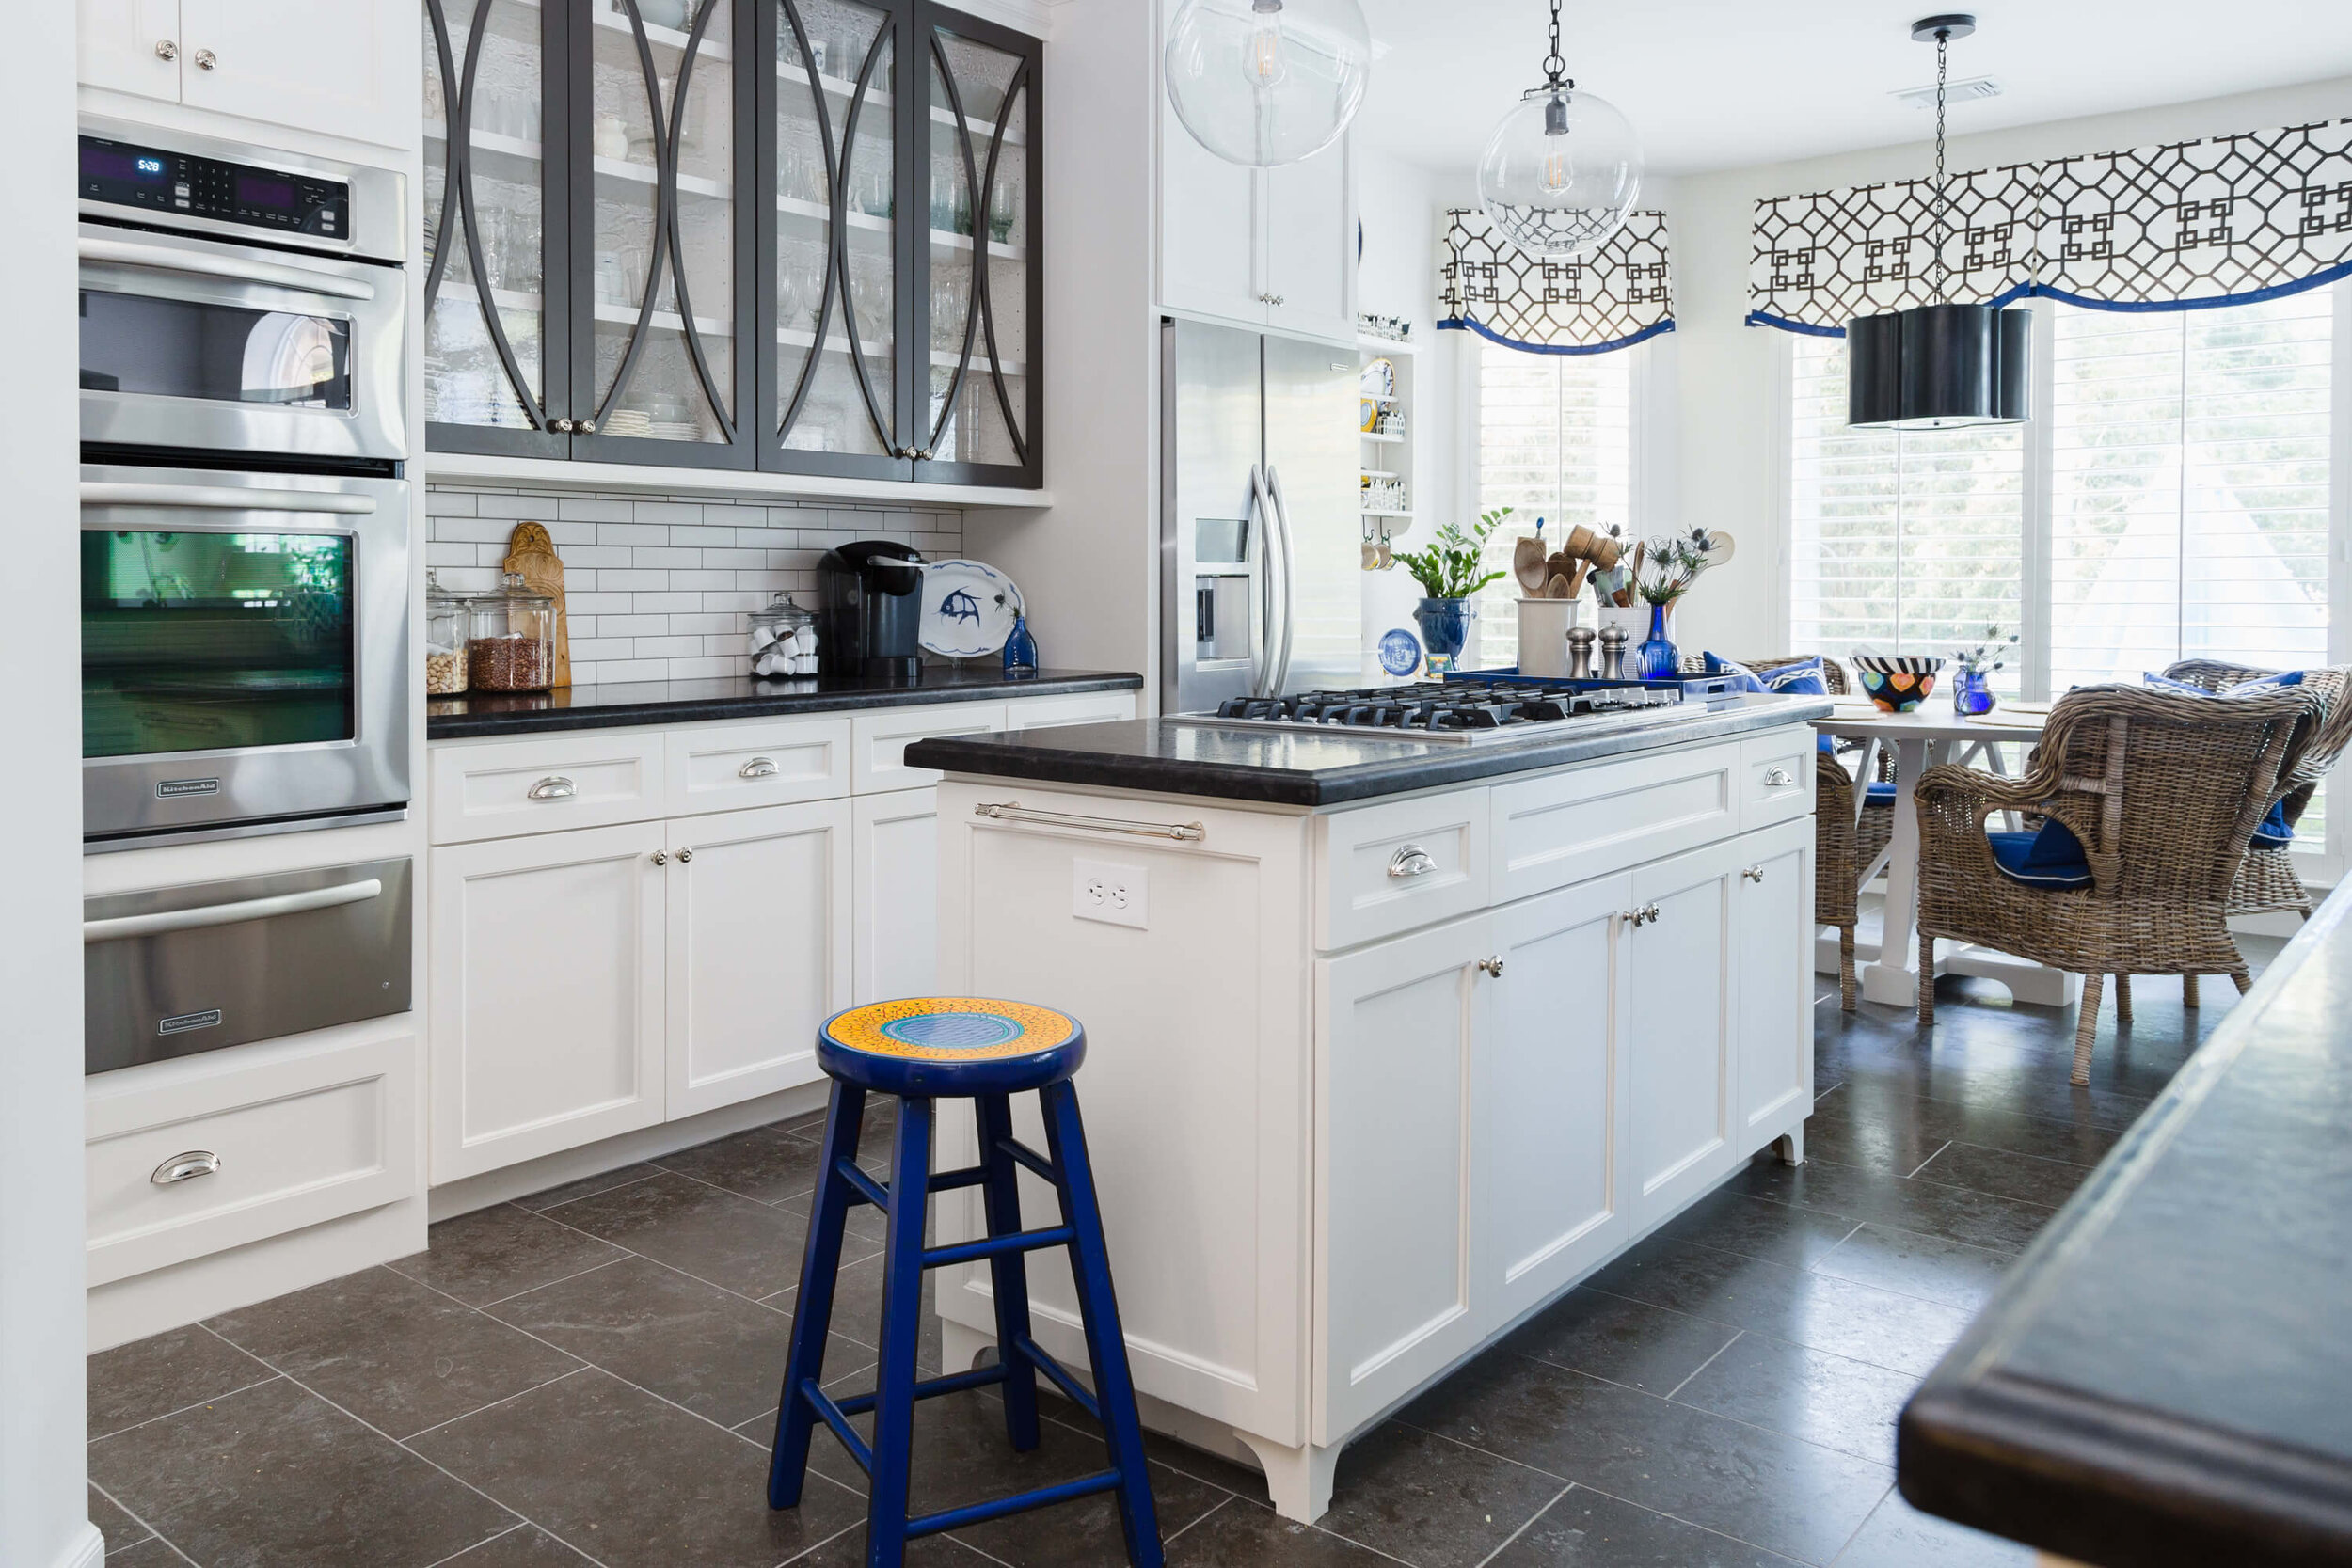 My own kitchen remodel, using SW Aesthetic White as the white paint color throughout. Carla Aston, Designer | Tori Aston, Photographer #whitekitchen #paintcolors #interiorpaintcolors